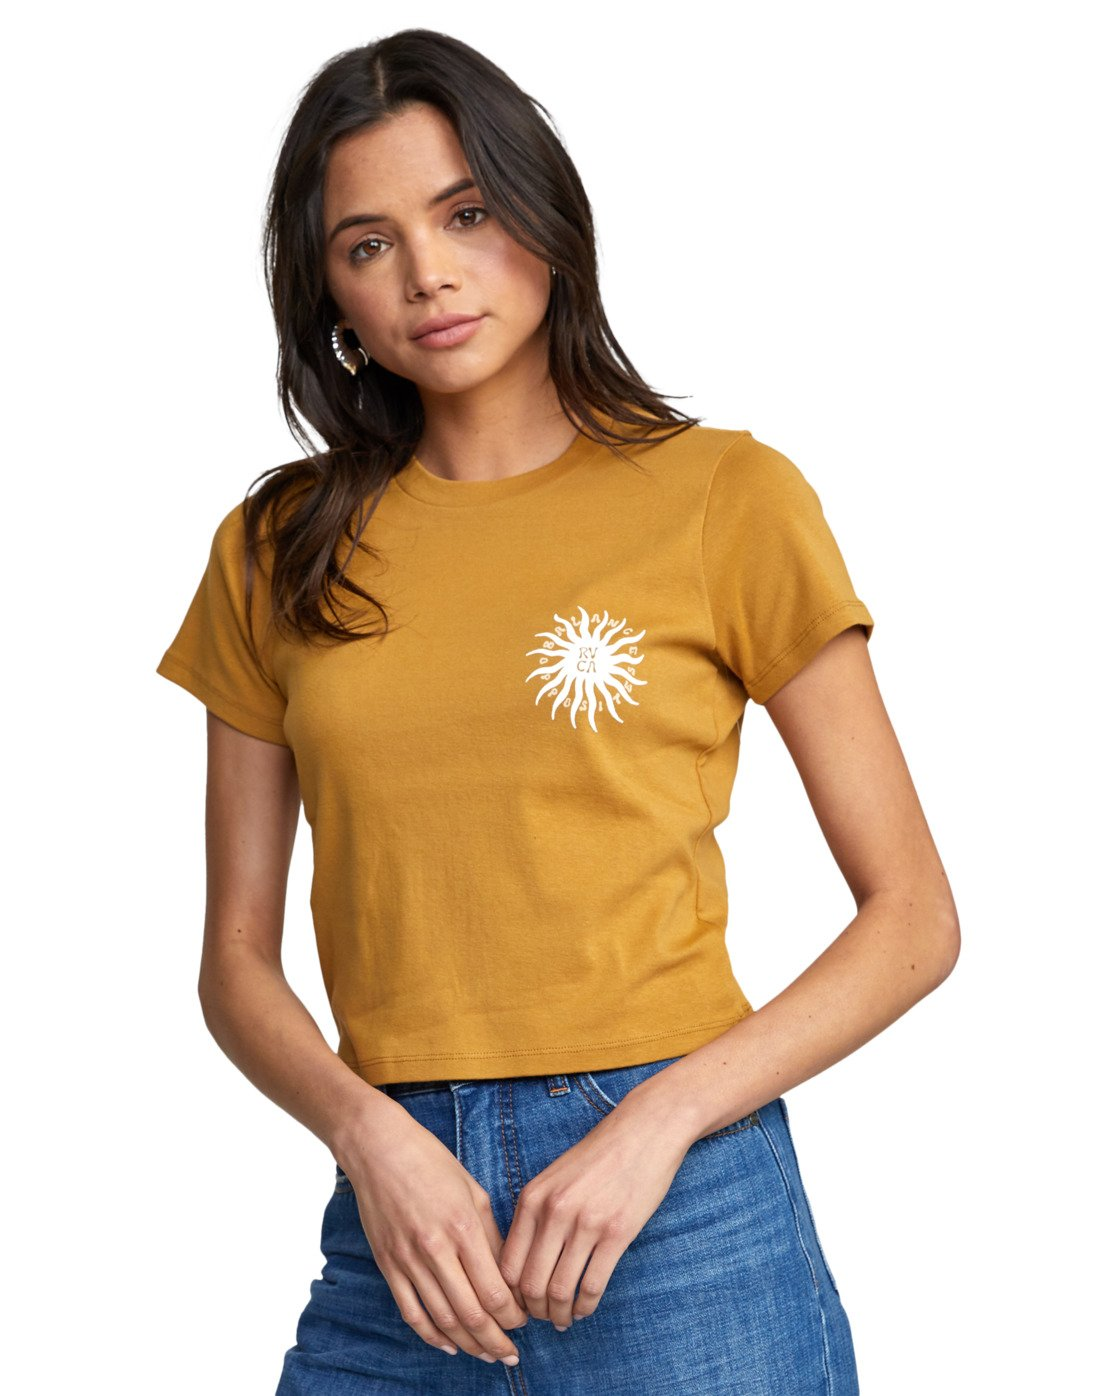 5 SUN SPROUT TEE White AVJZT00128 RVCA